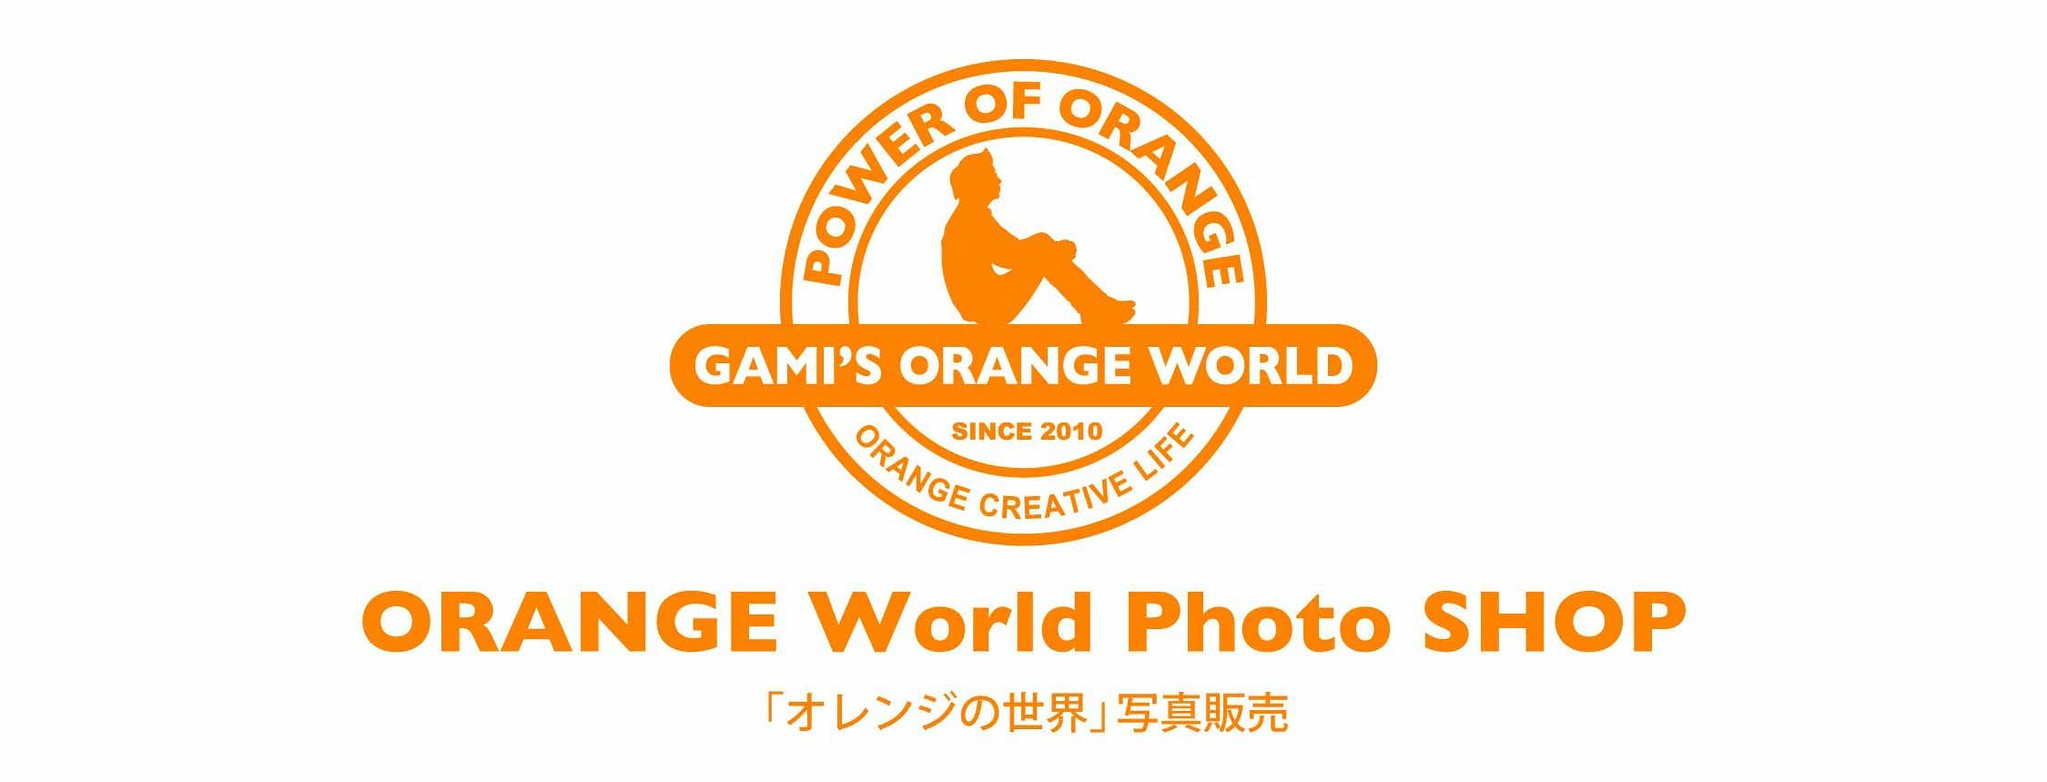 ORANGE World Photo SHOP